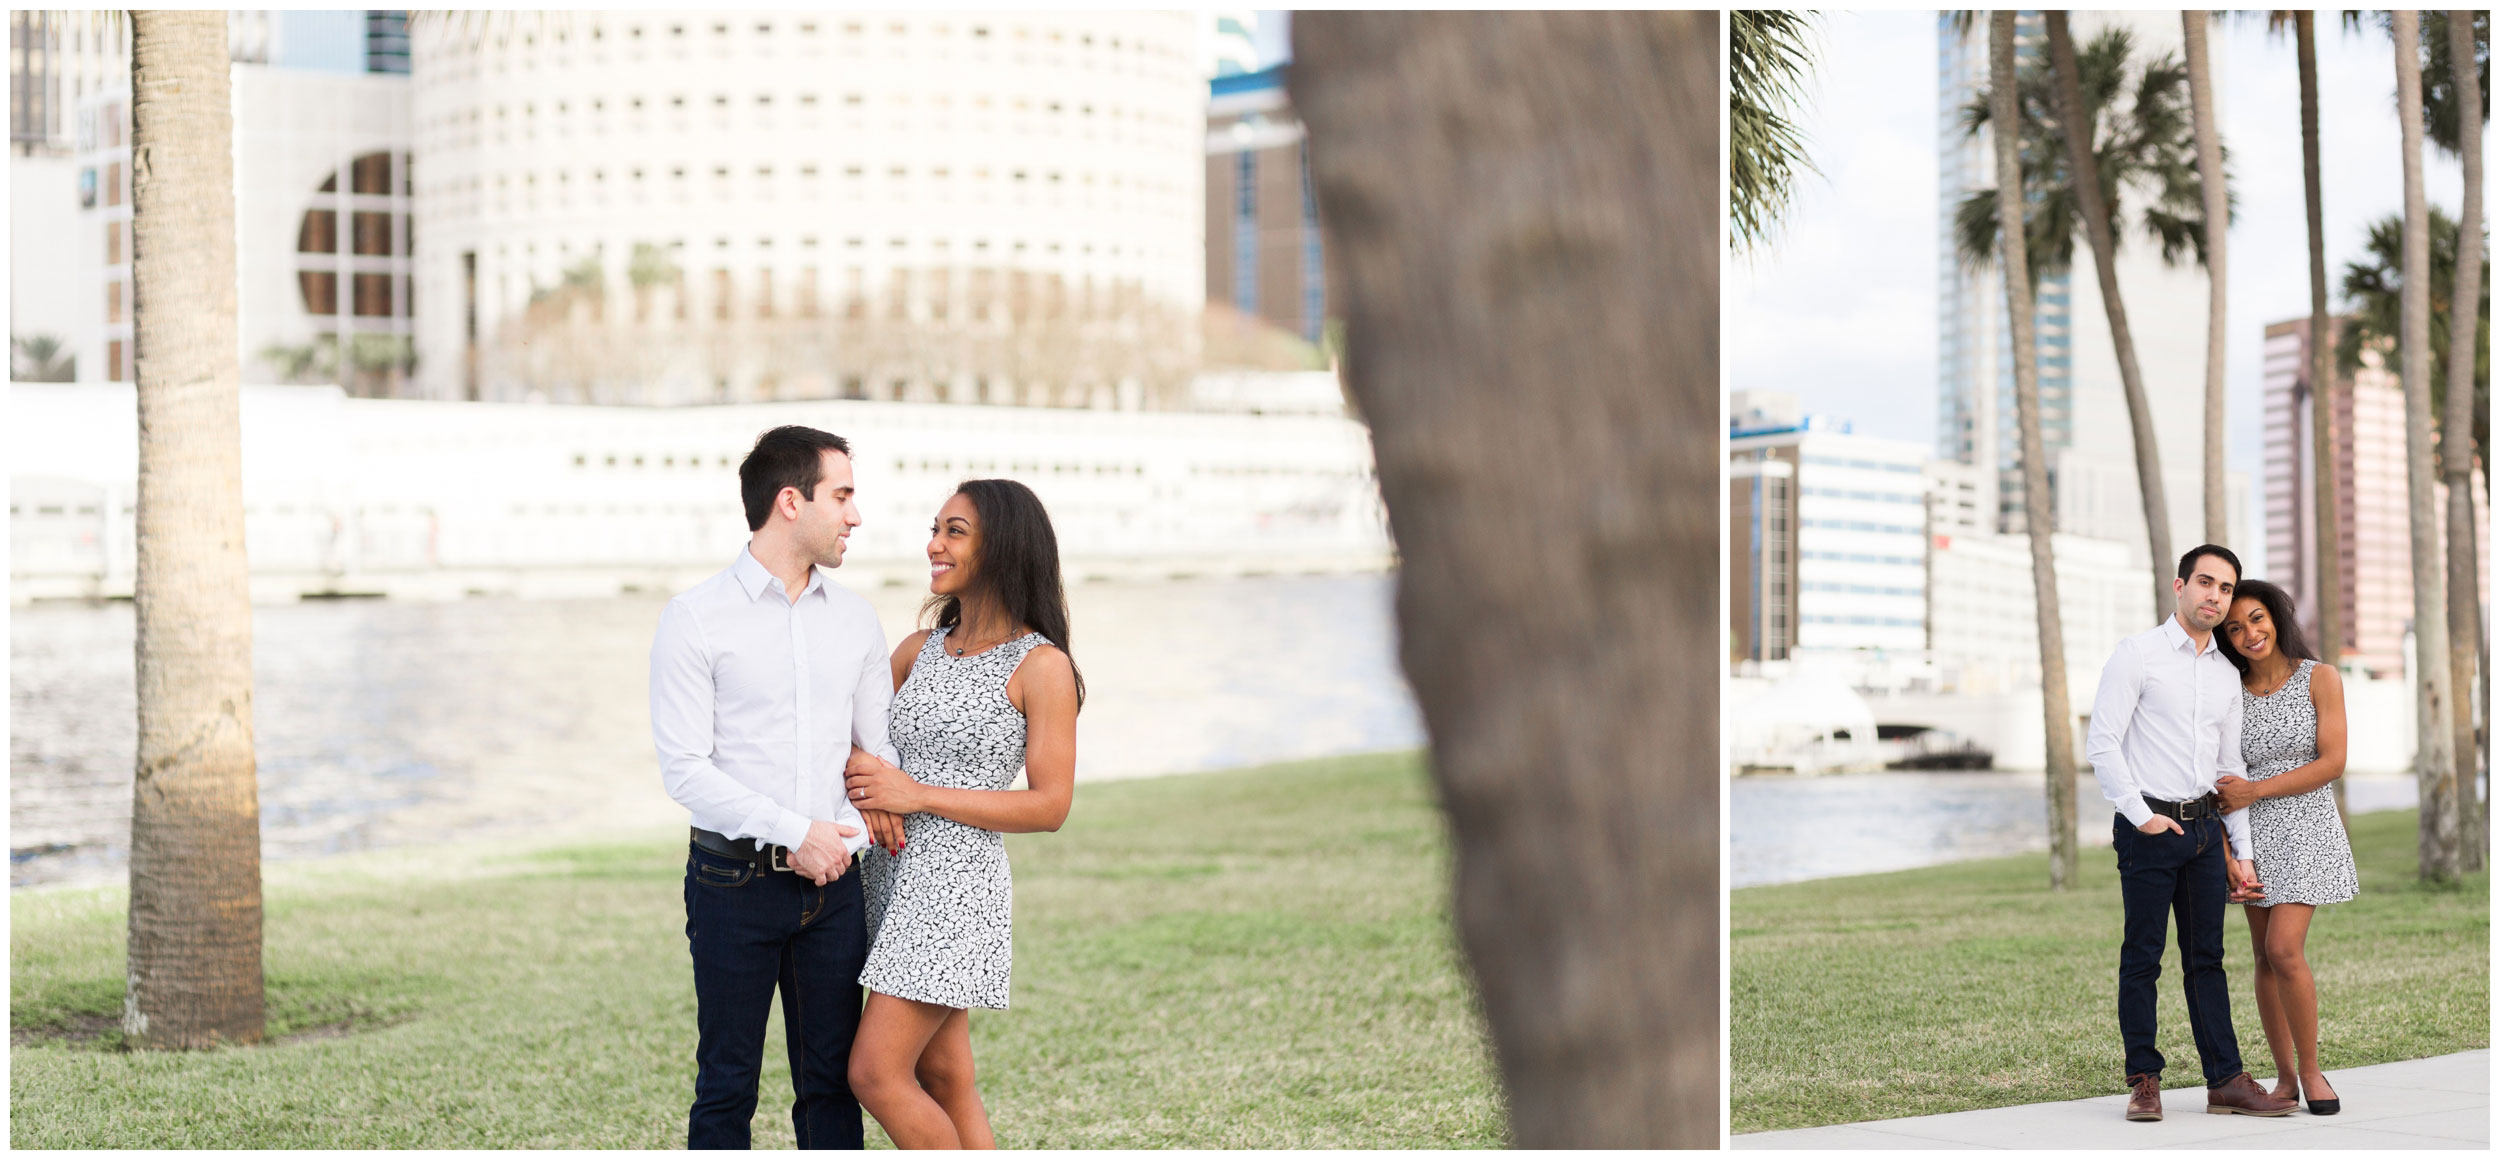 engagement-university-of-tampa-plant-park_0010.jpg